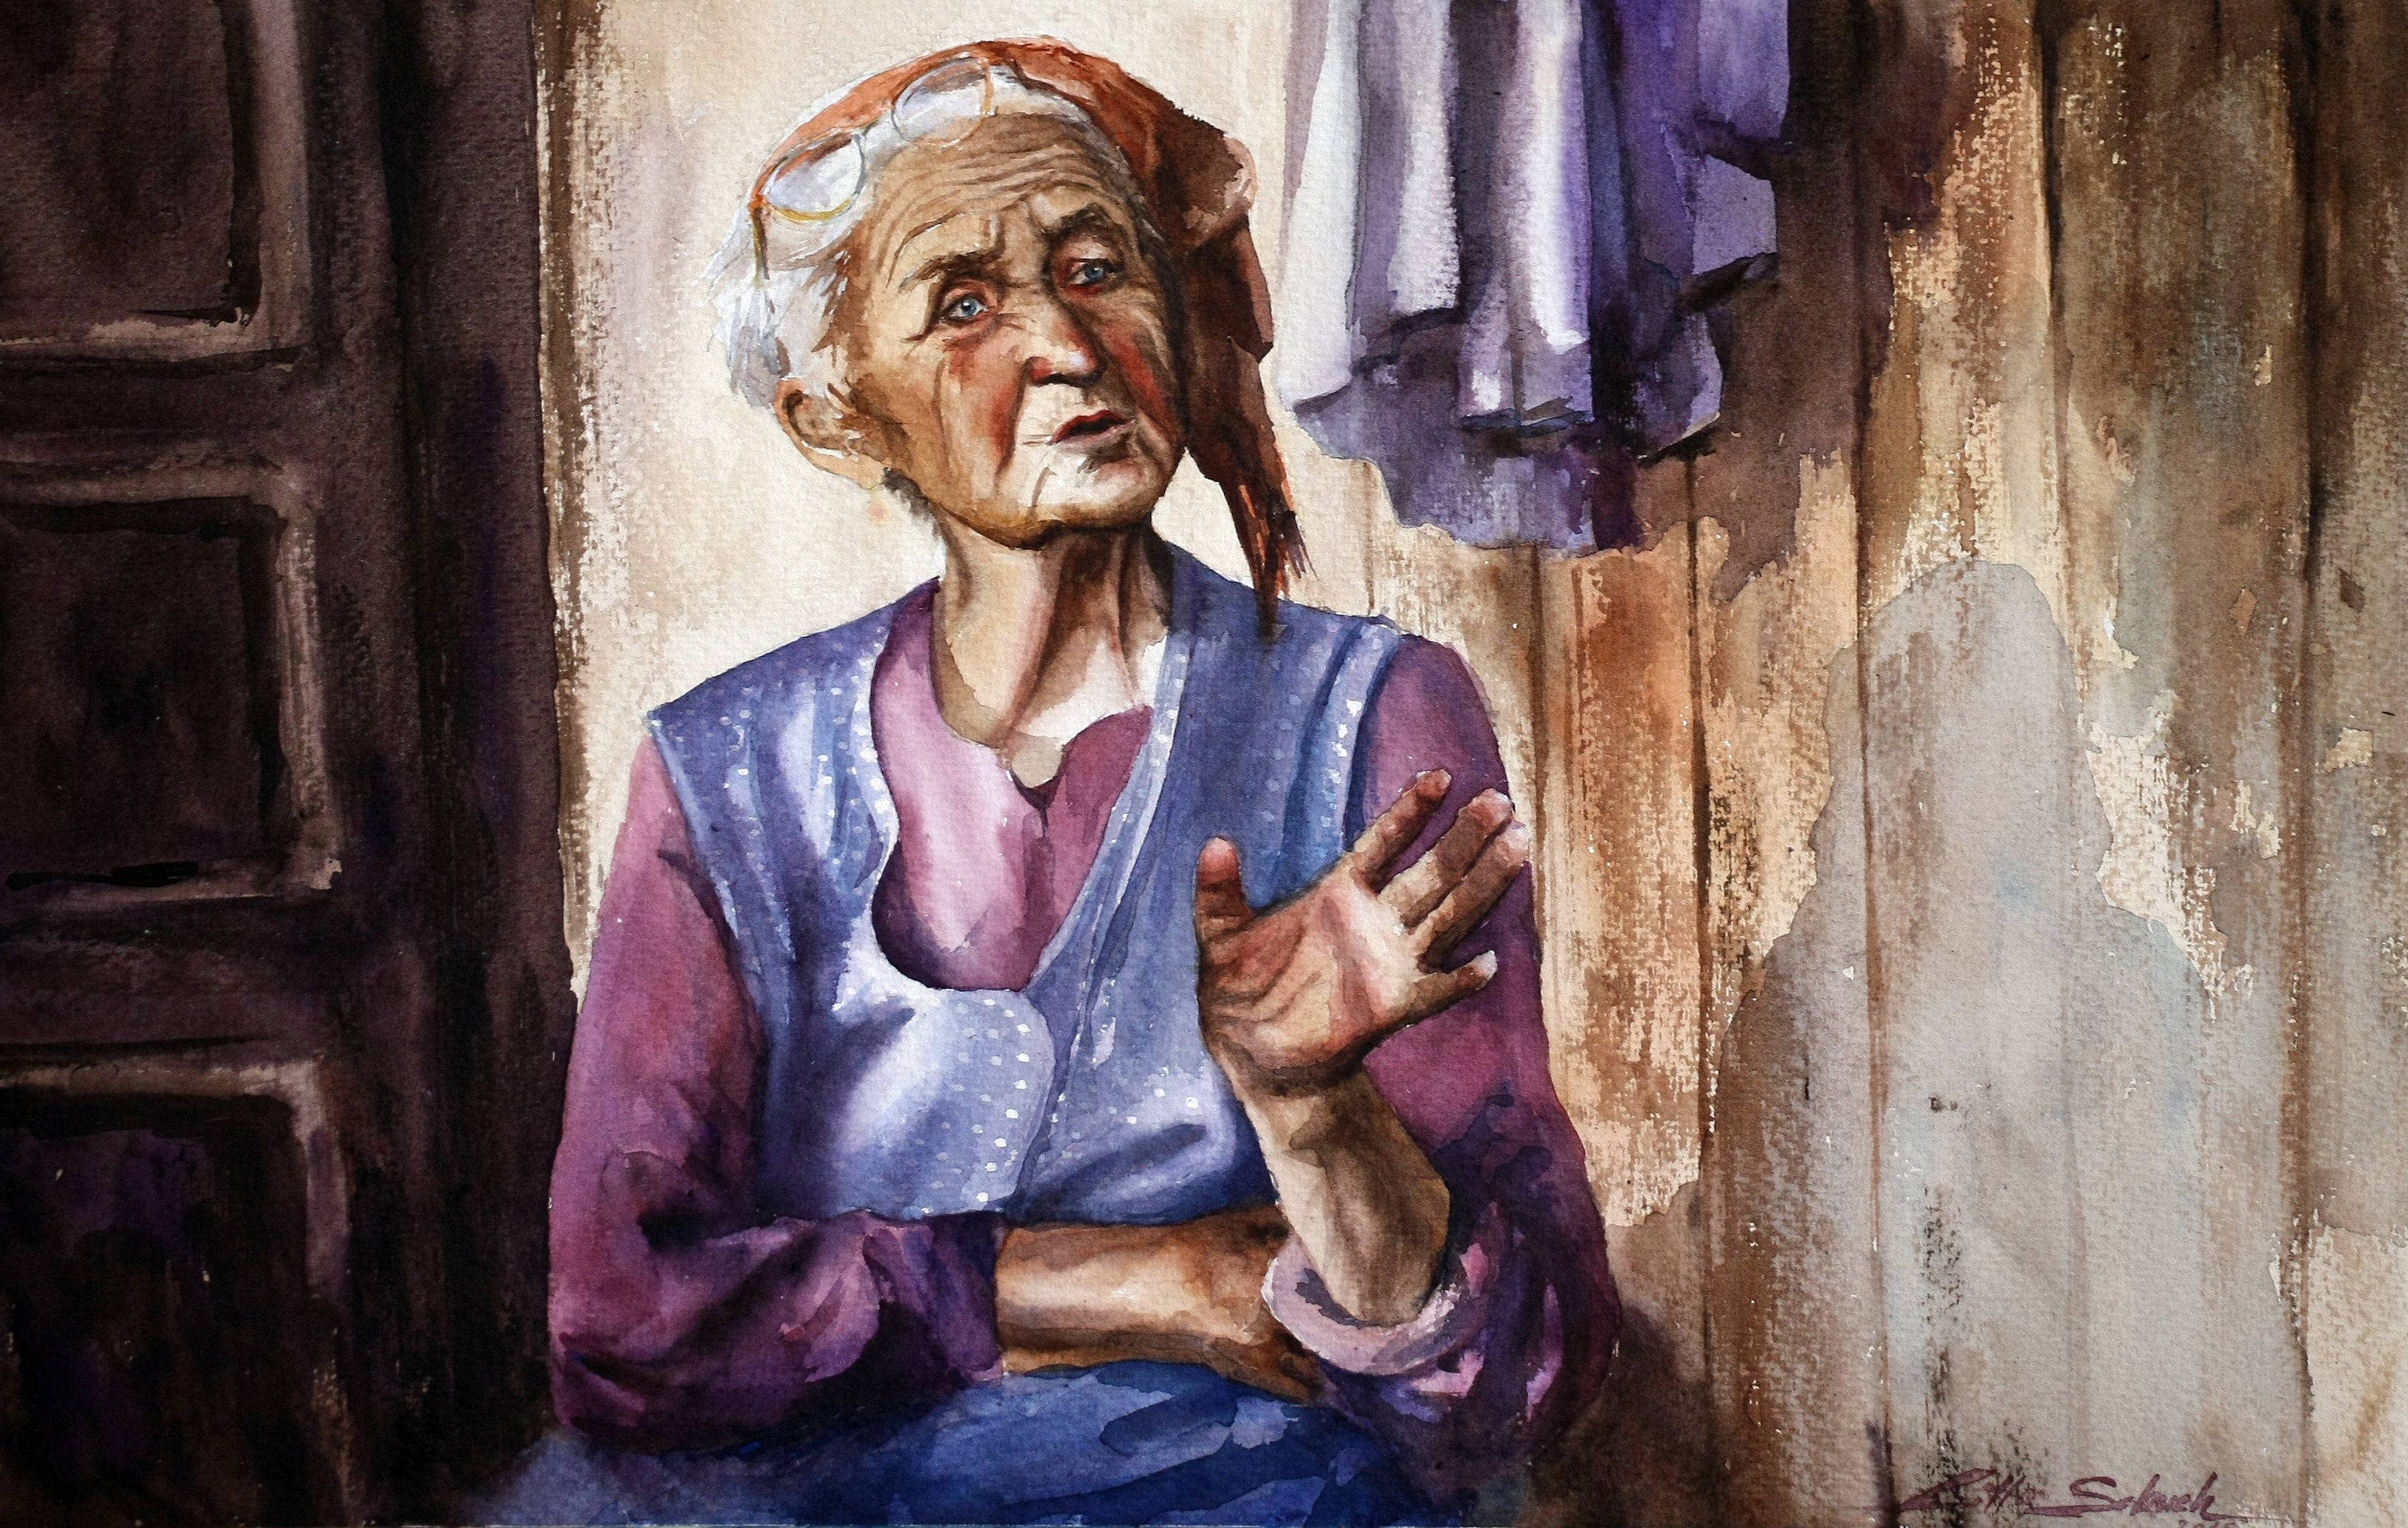 Old stories - Watercolor paintings by Lilla Schuch